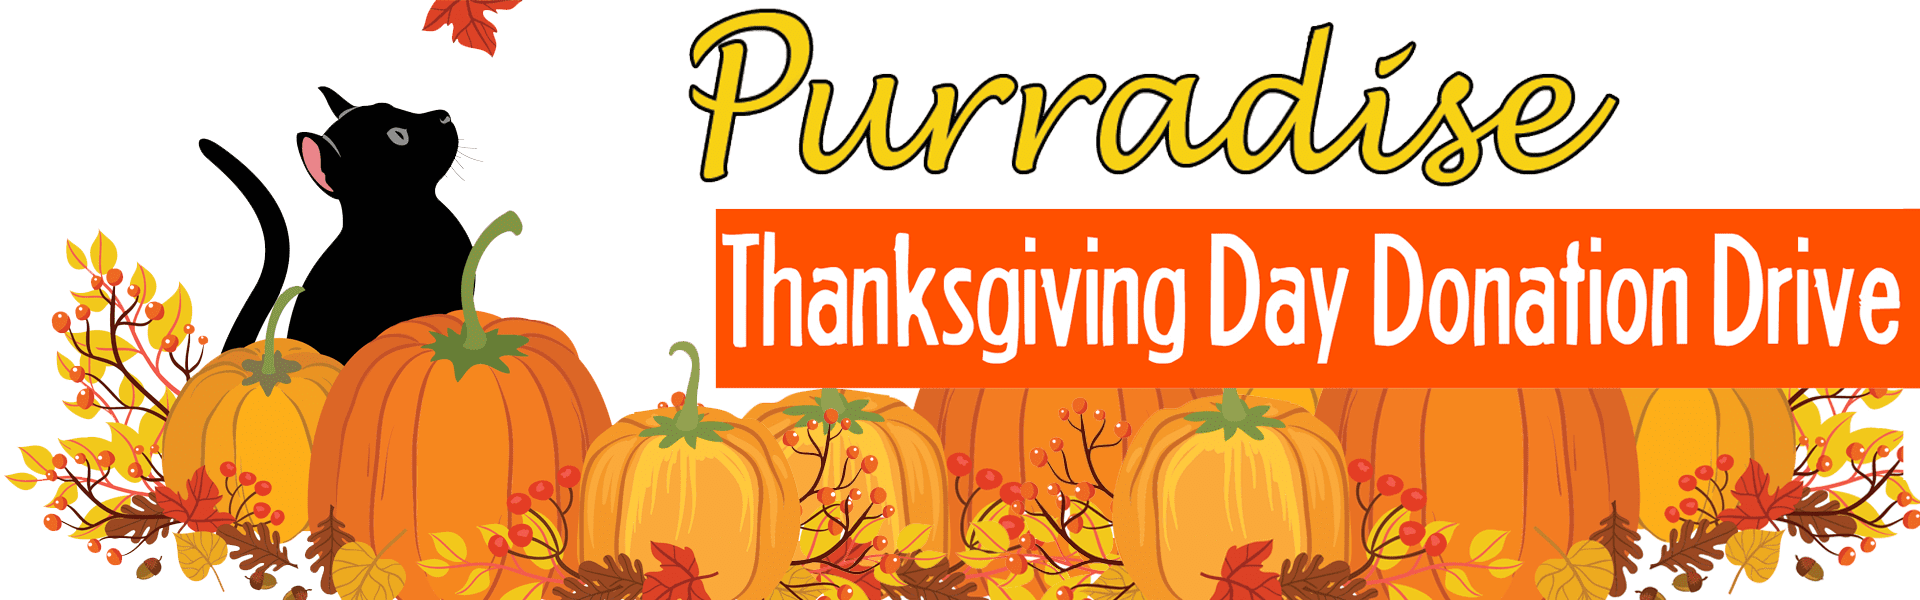 Thanksgiving Day Purradise Donation Drive Berkshire